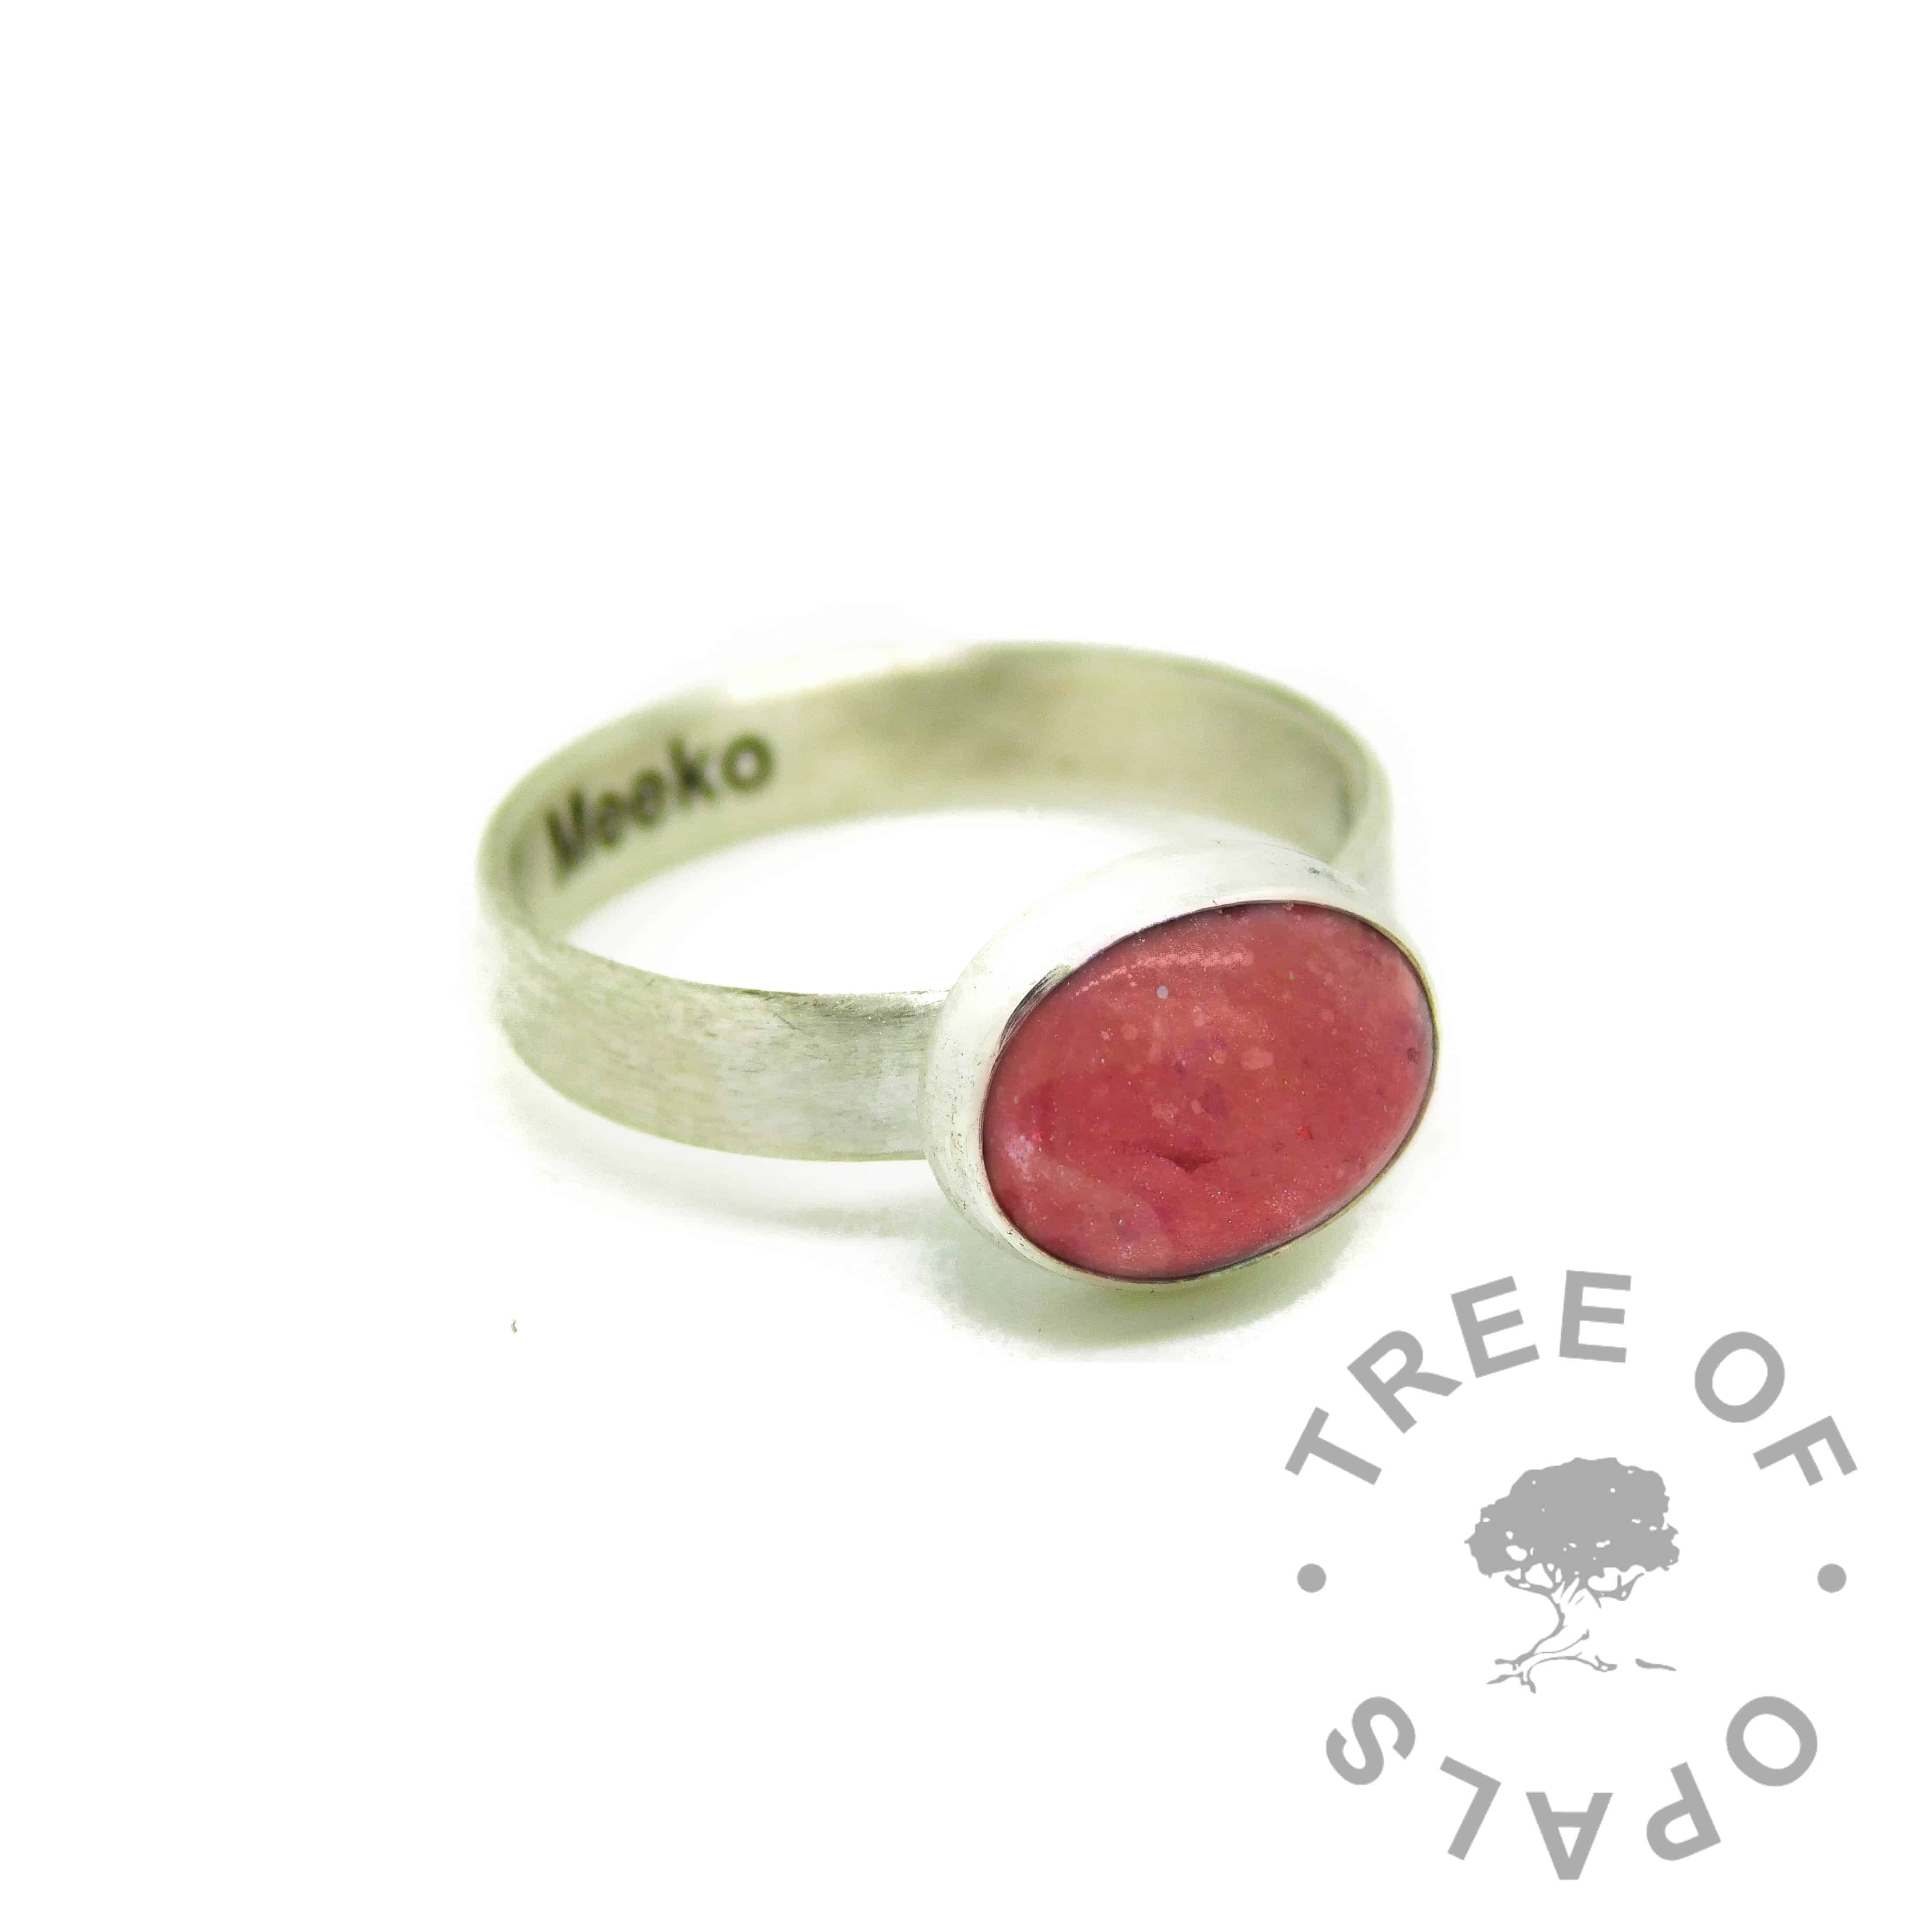 dragon's blood red resin sparkle mix cremation ash ring, engraved brushed band. Ashes ring memorial jewellery